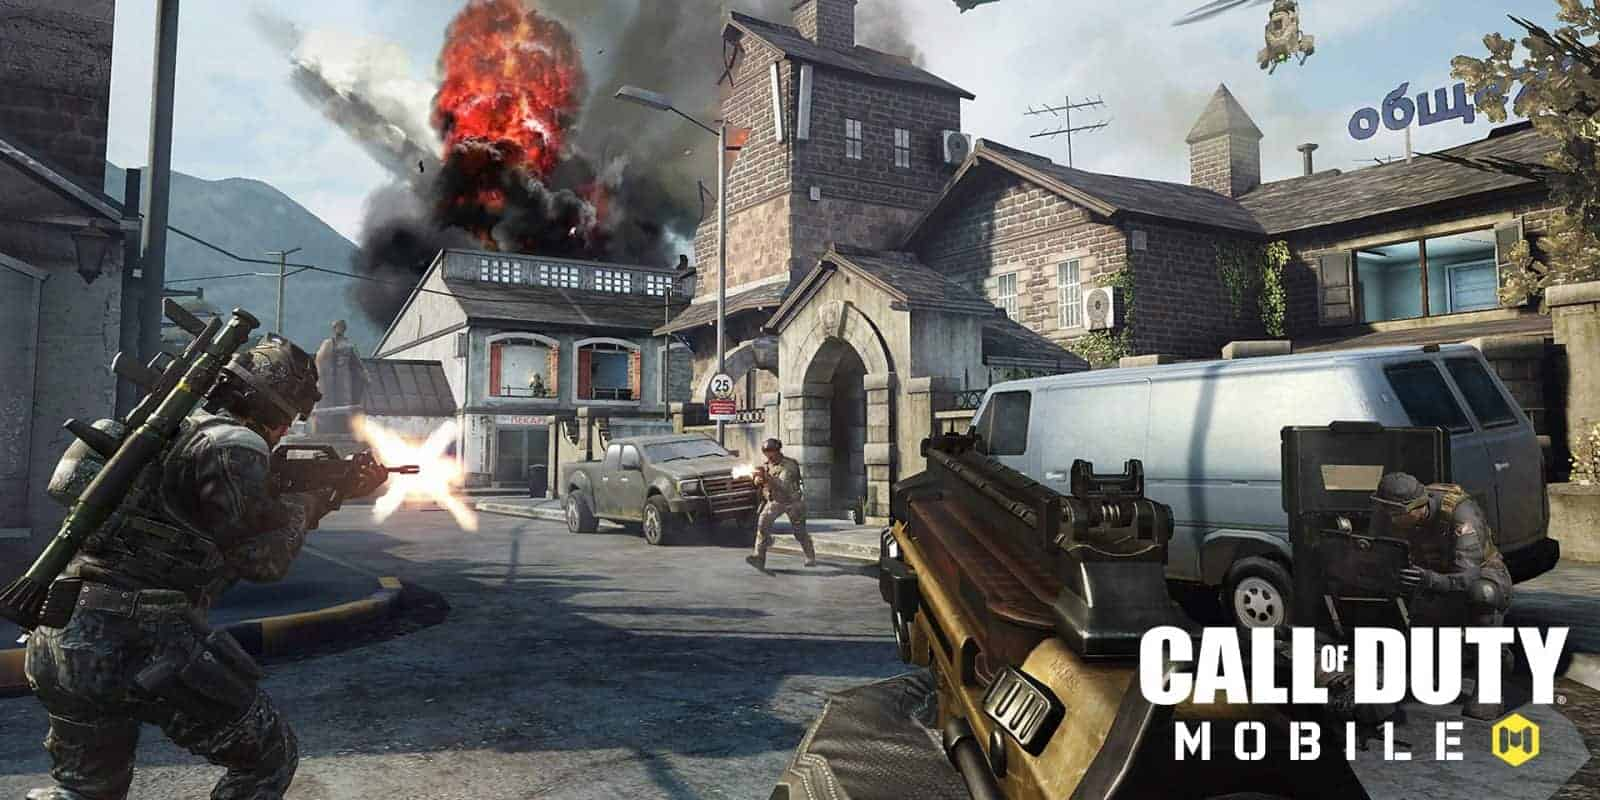 Download Call of Duty mobile apk + obb latest version